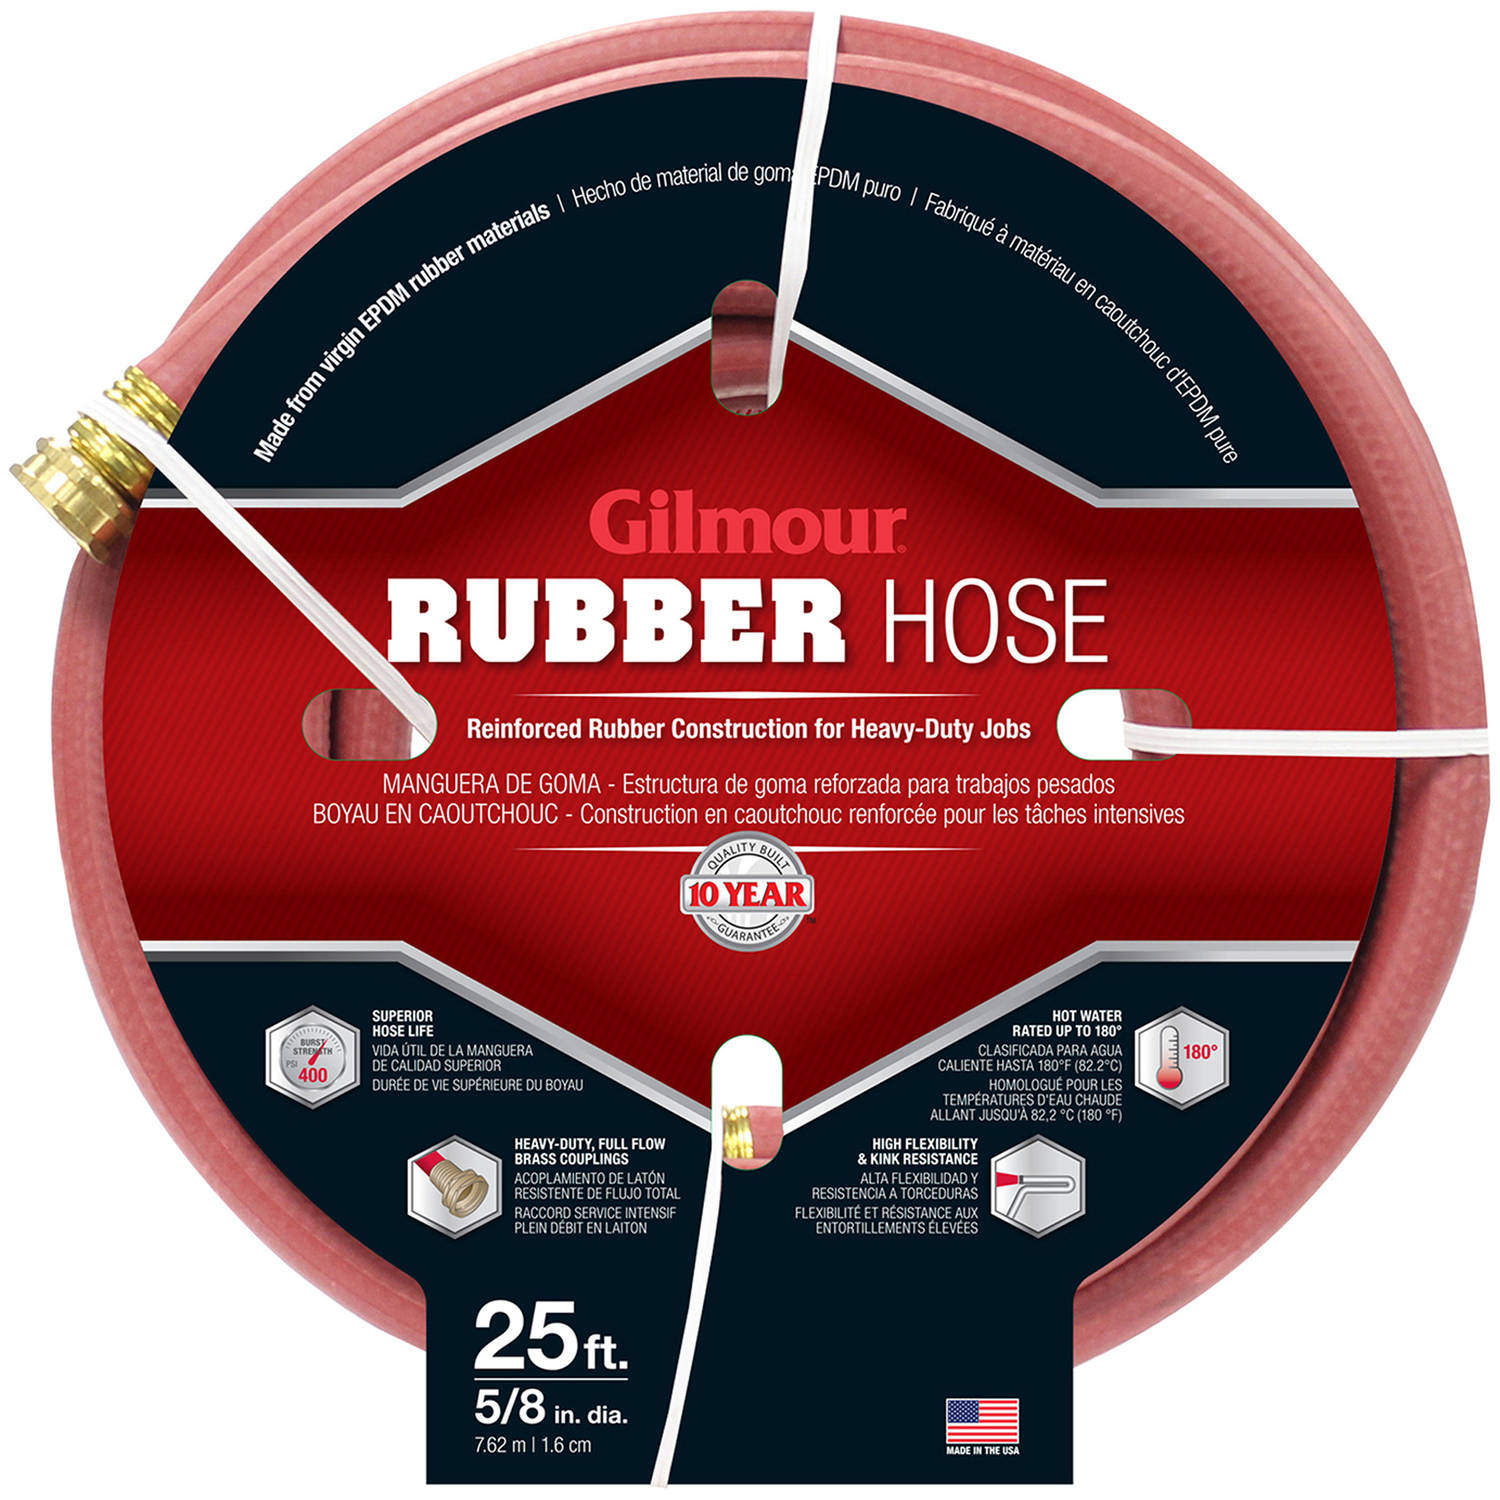 "Gilmour 18058025 25' x 5/8"" Commercial Hot Water Rubber Hose"